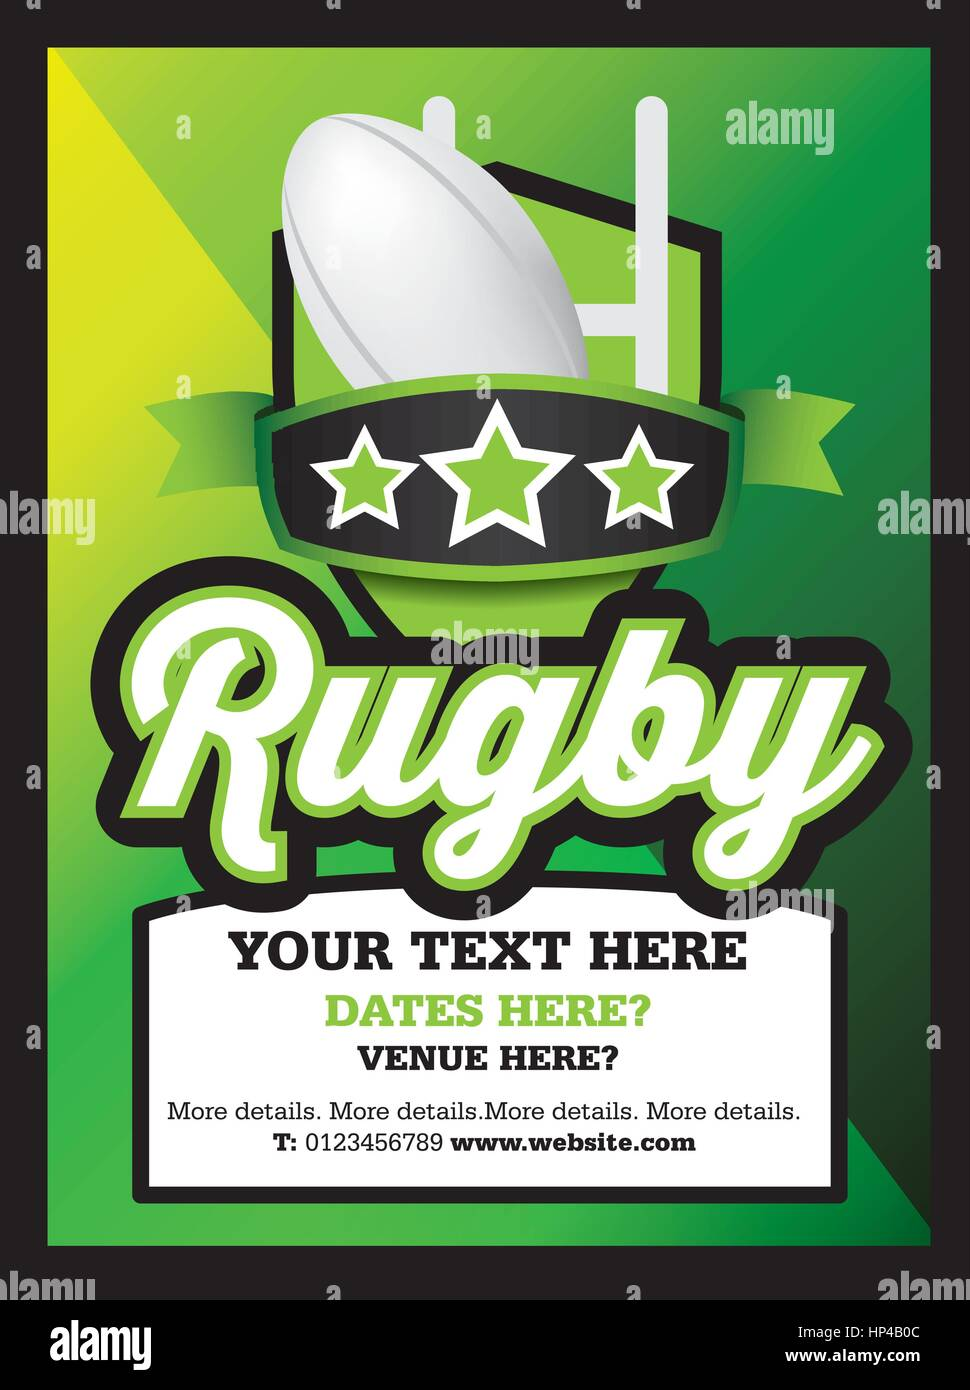 poster ad advertisement marketing or promotion flyer for a rugby